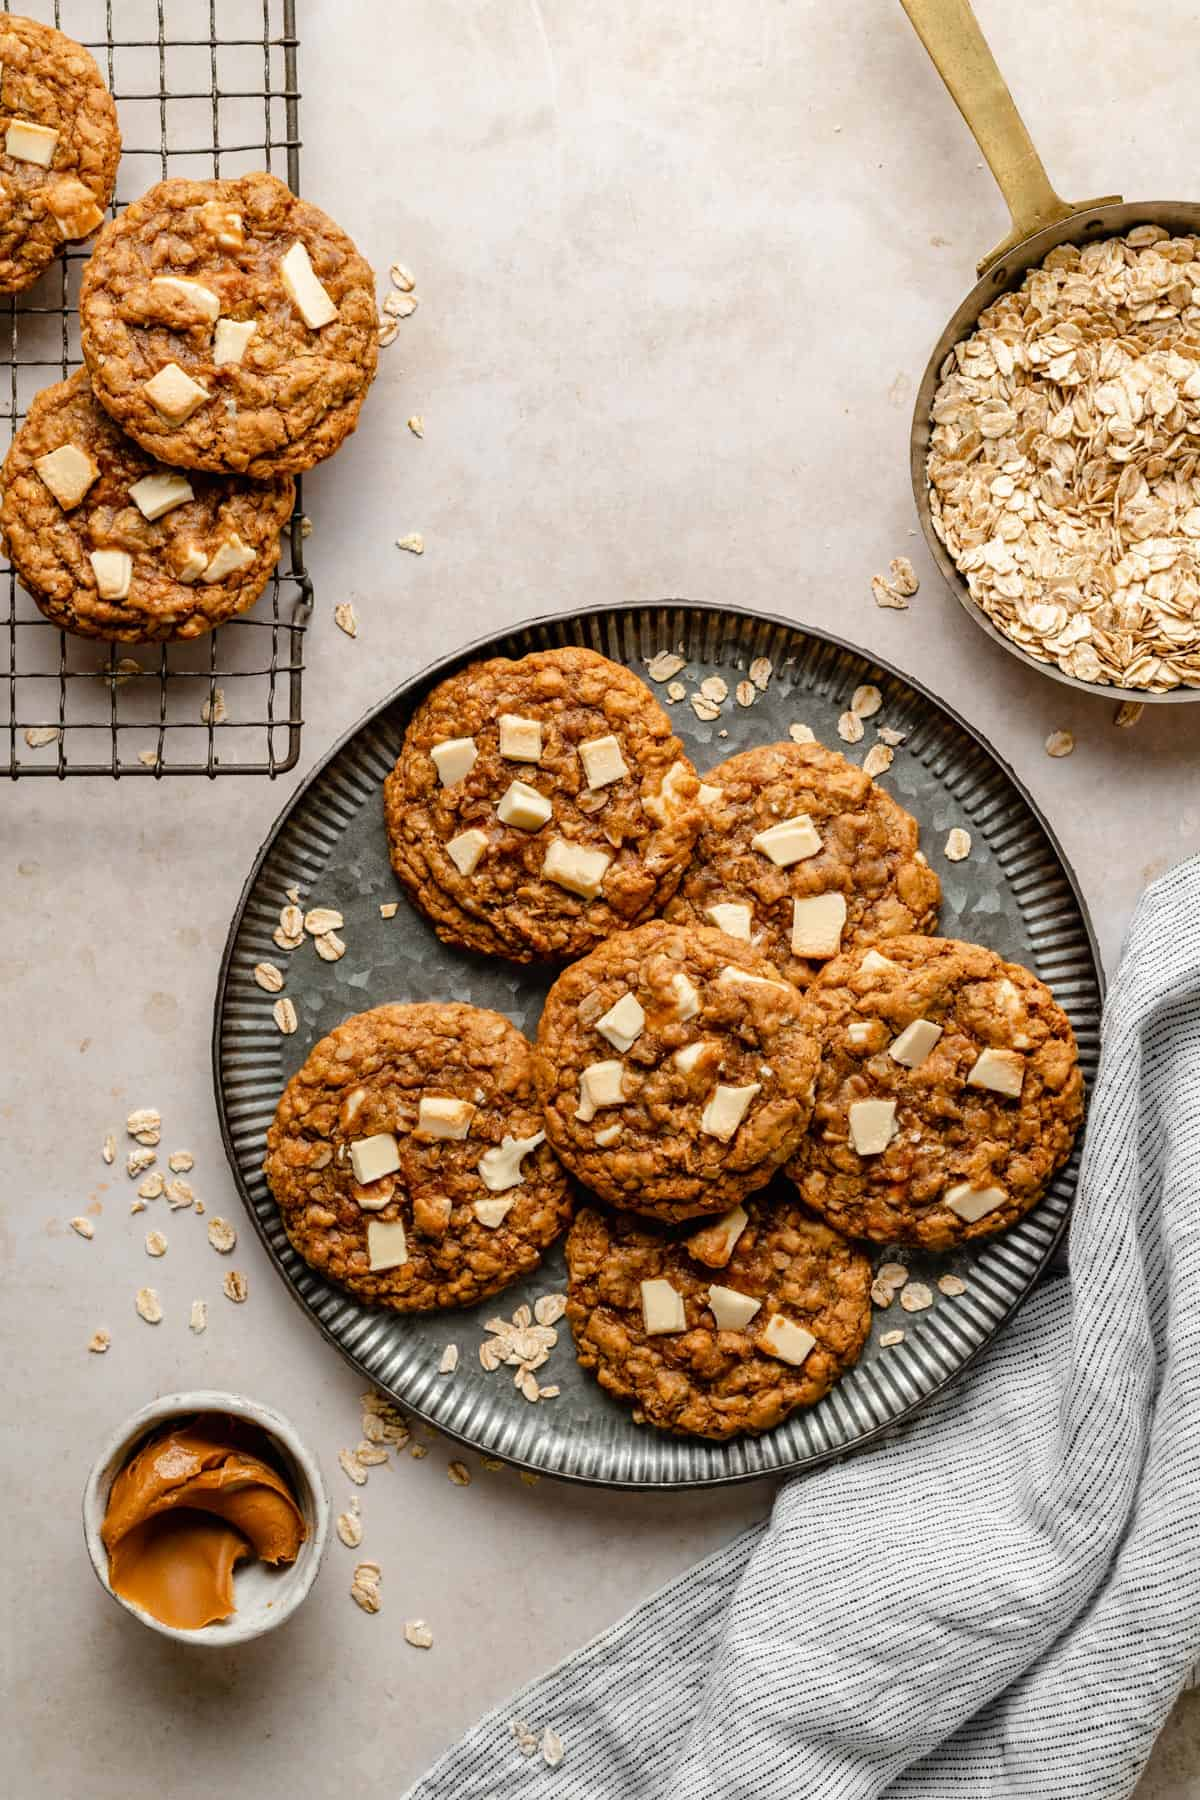 Biscoff and white chocolate chip oatmeal cookies on a plate and cooling rack, with oats and biscoff in dishes nearby